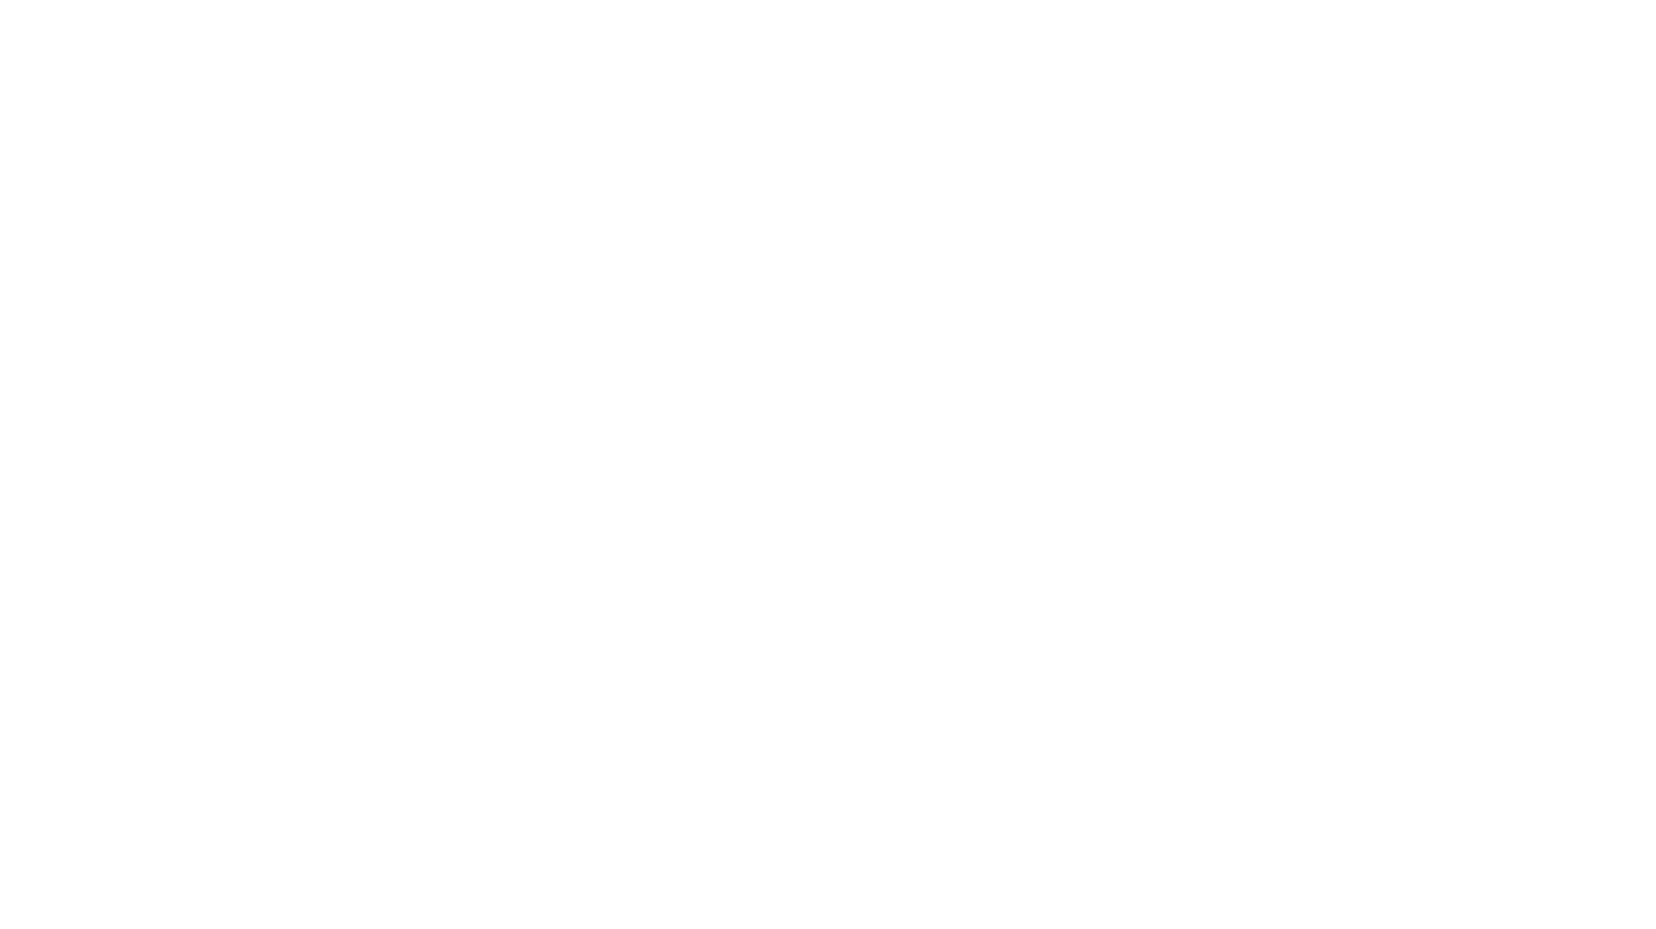 Claims Excellence Awards | An Insurance Times event